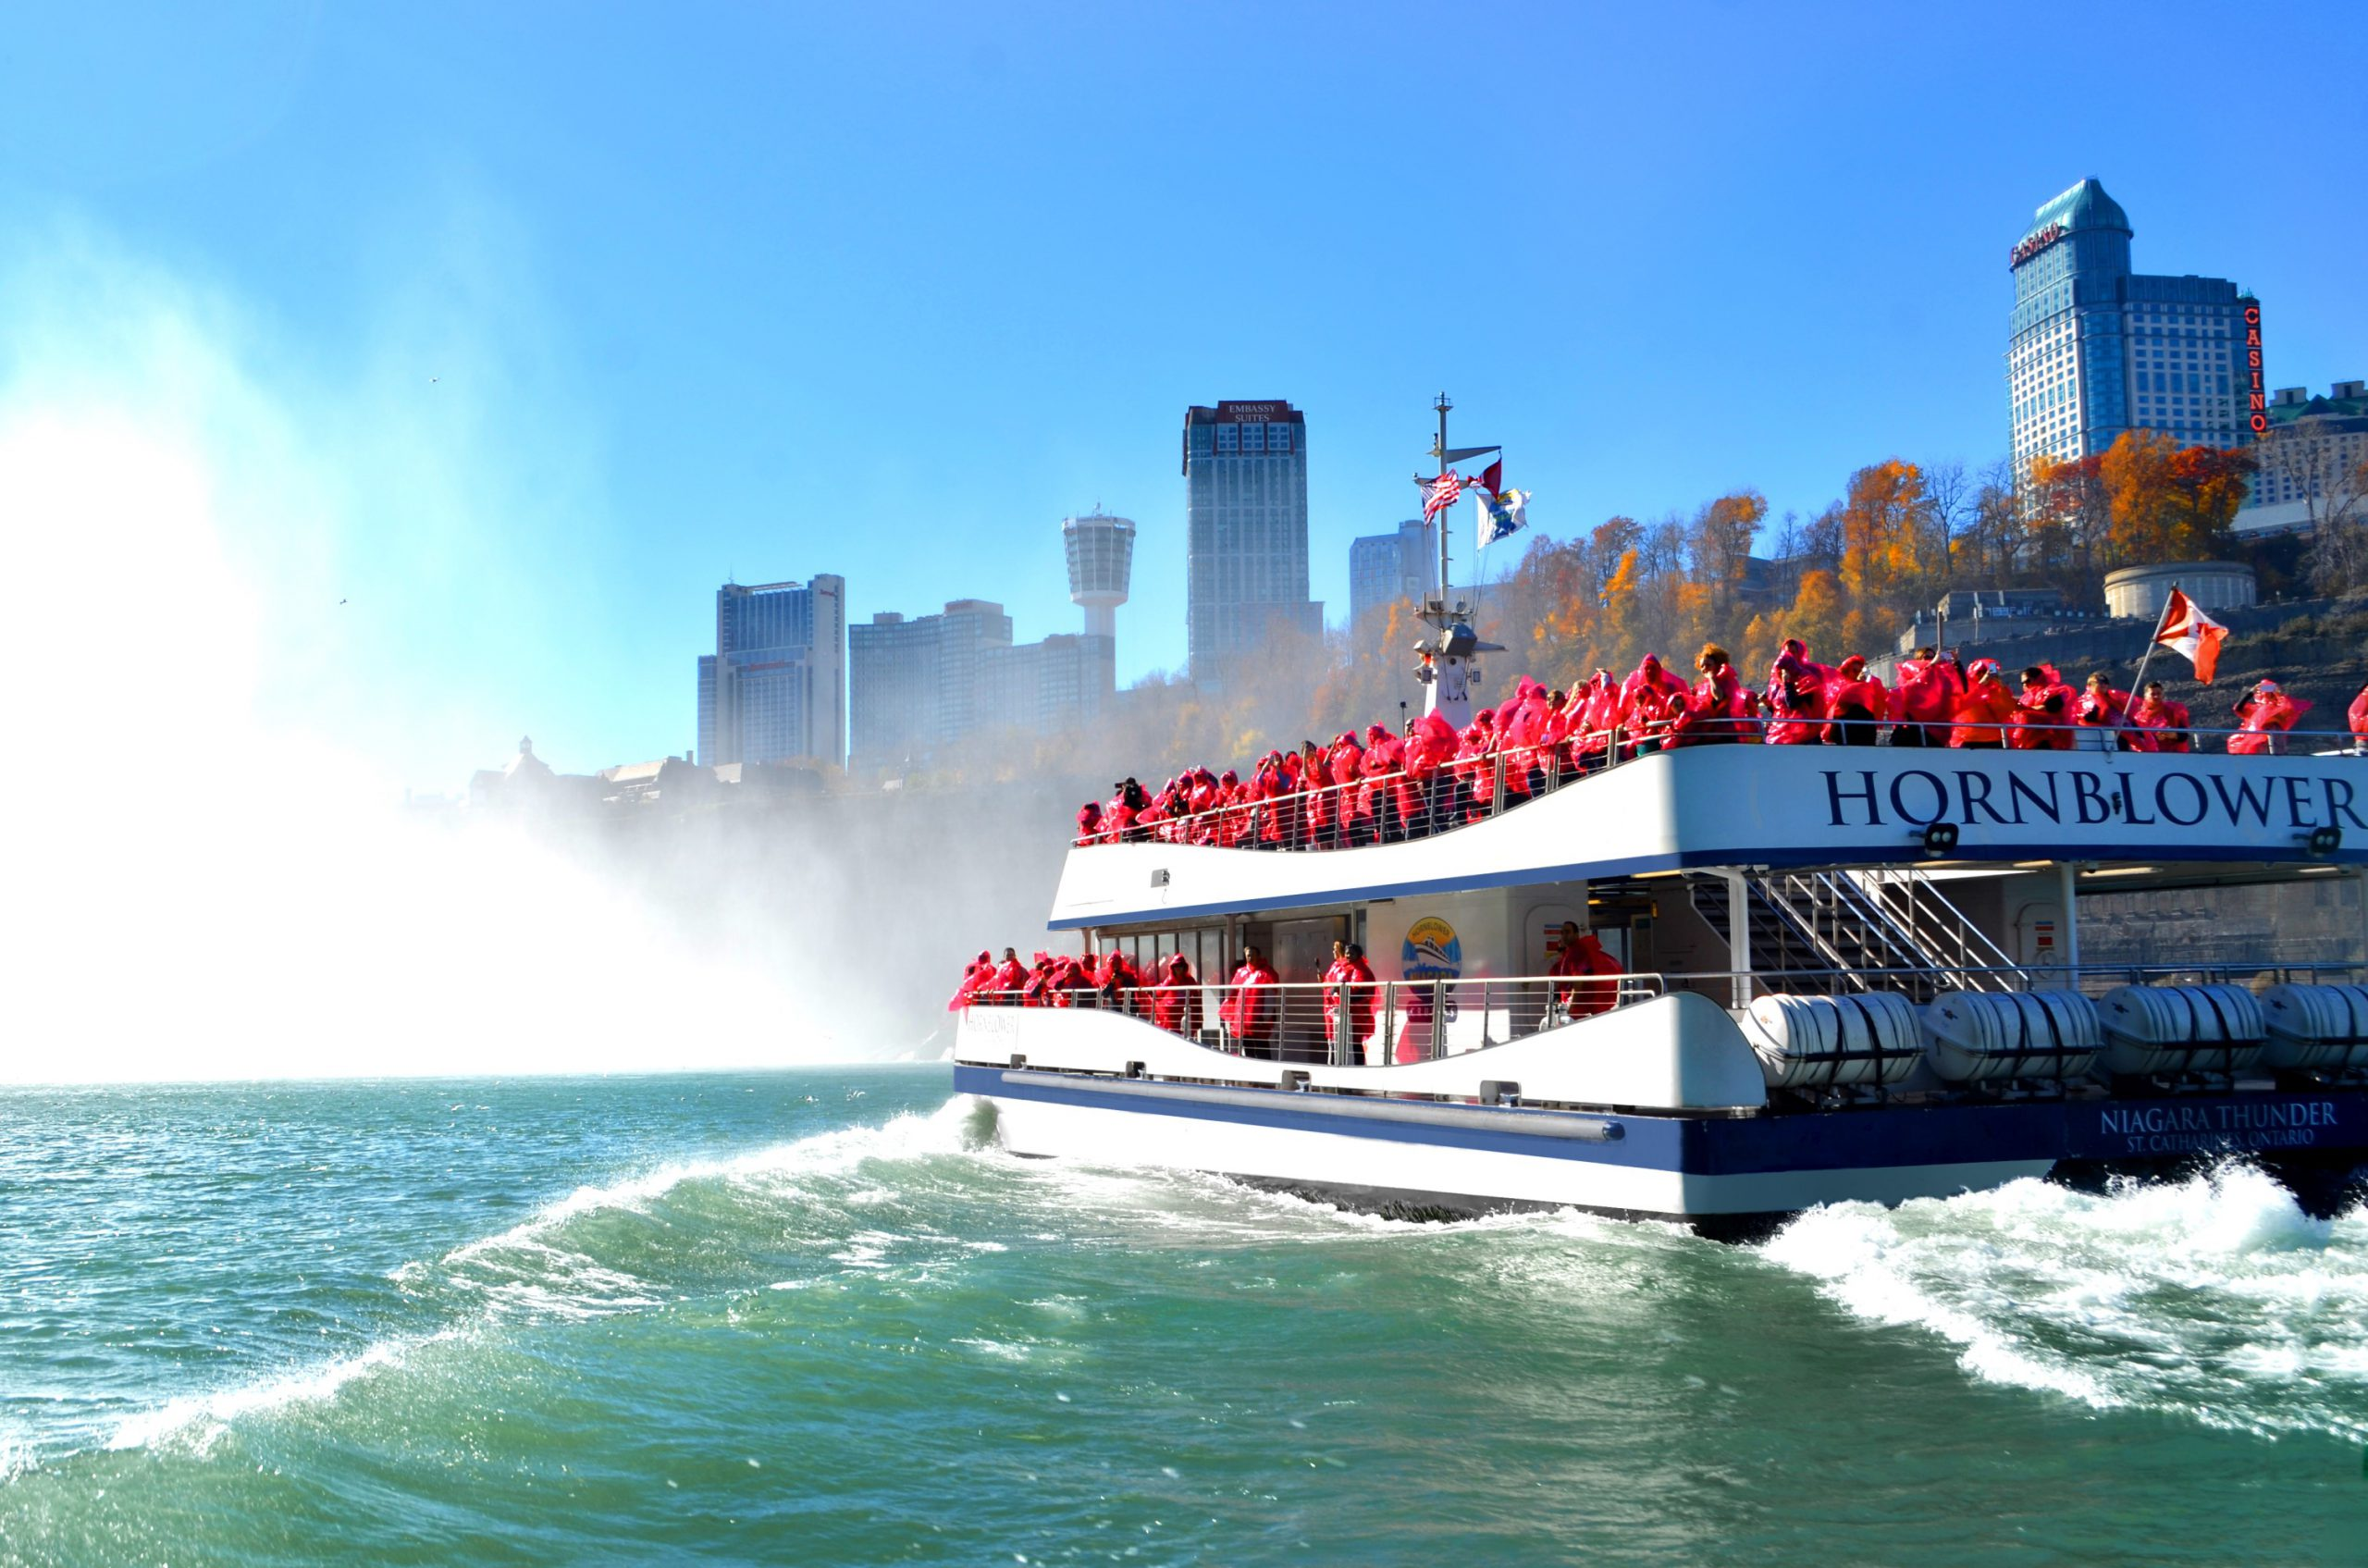 Hornblower Niagara Cruises Catamaran